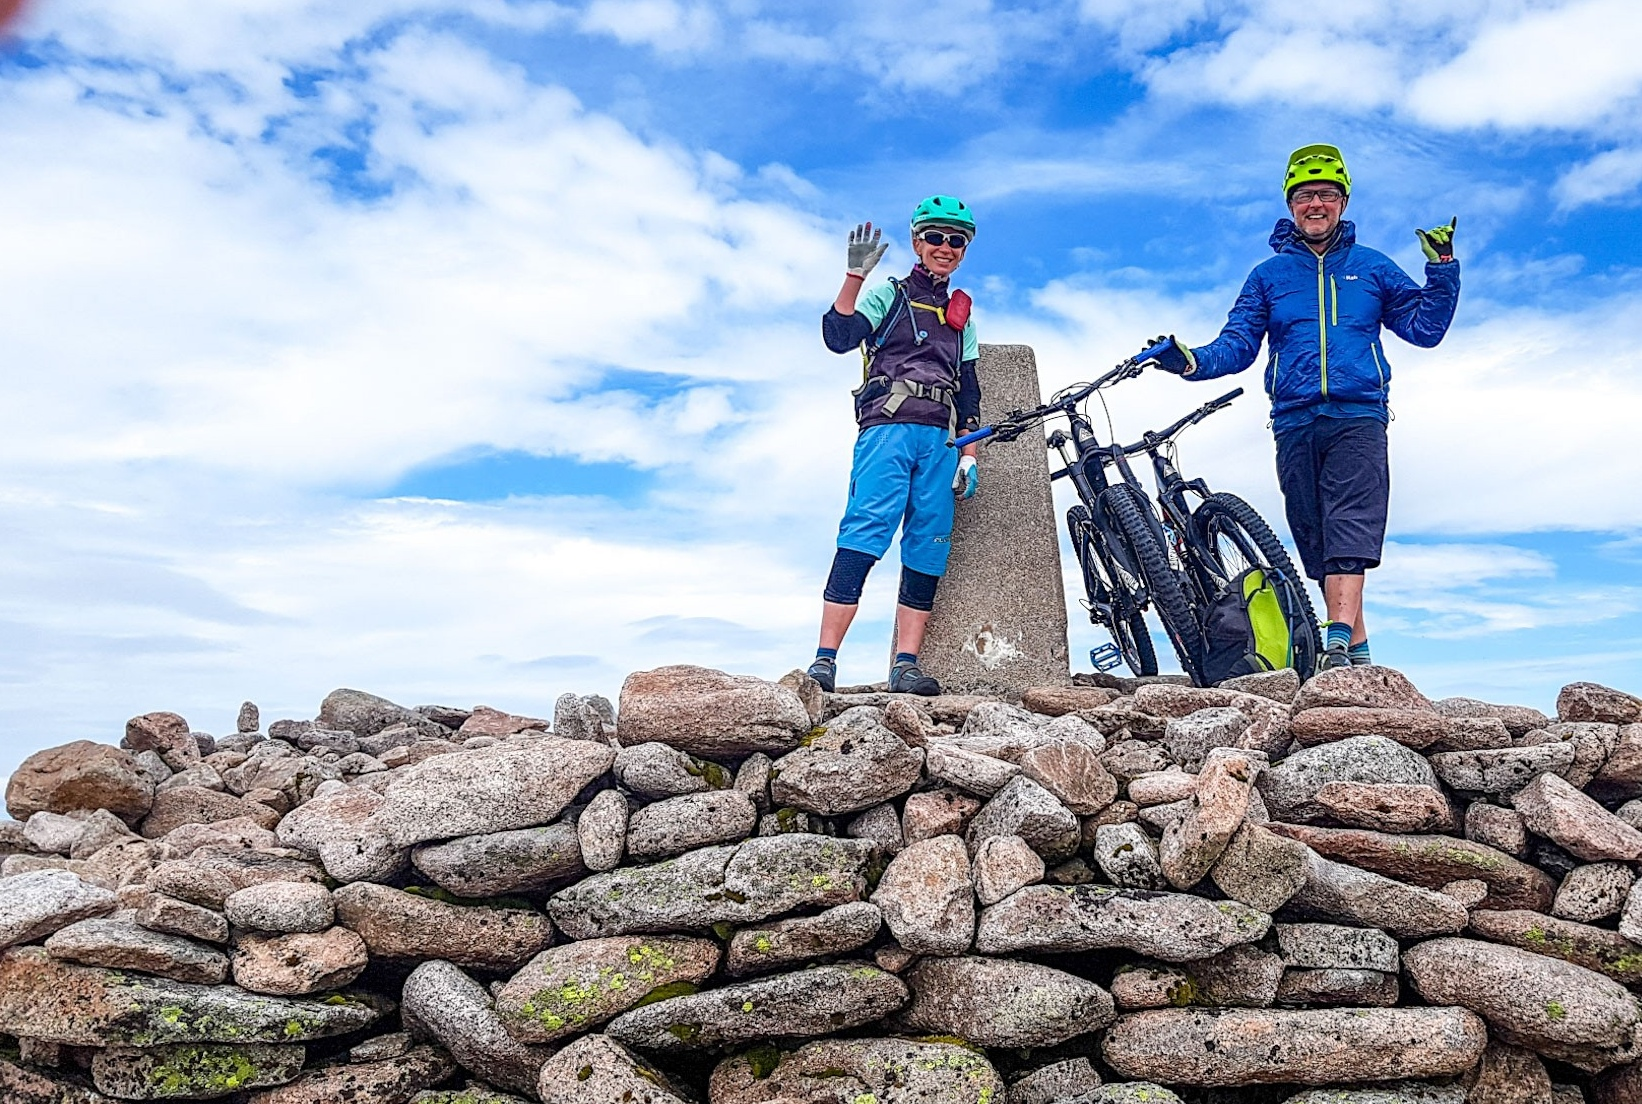 tom and steph from tom hutton mtb are your guides for this scotland adventure